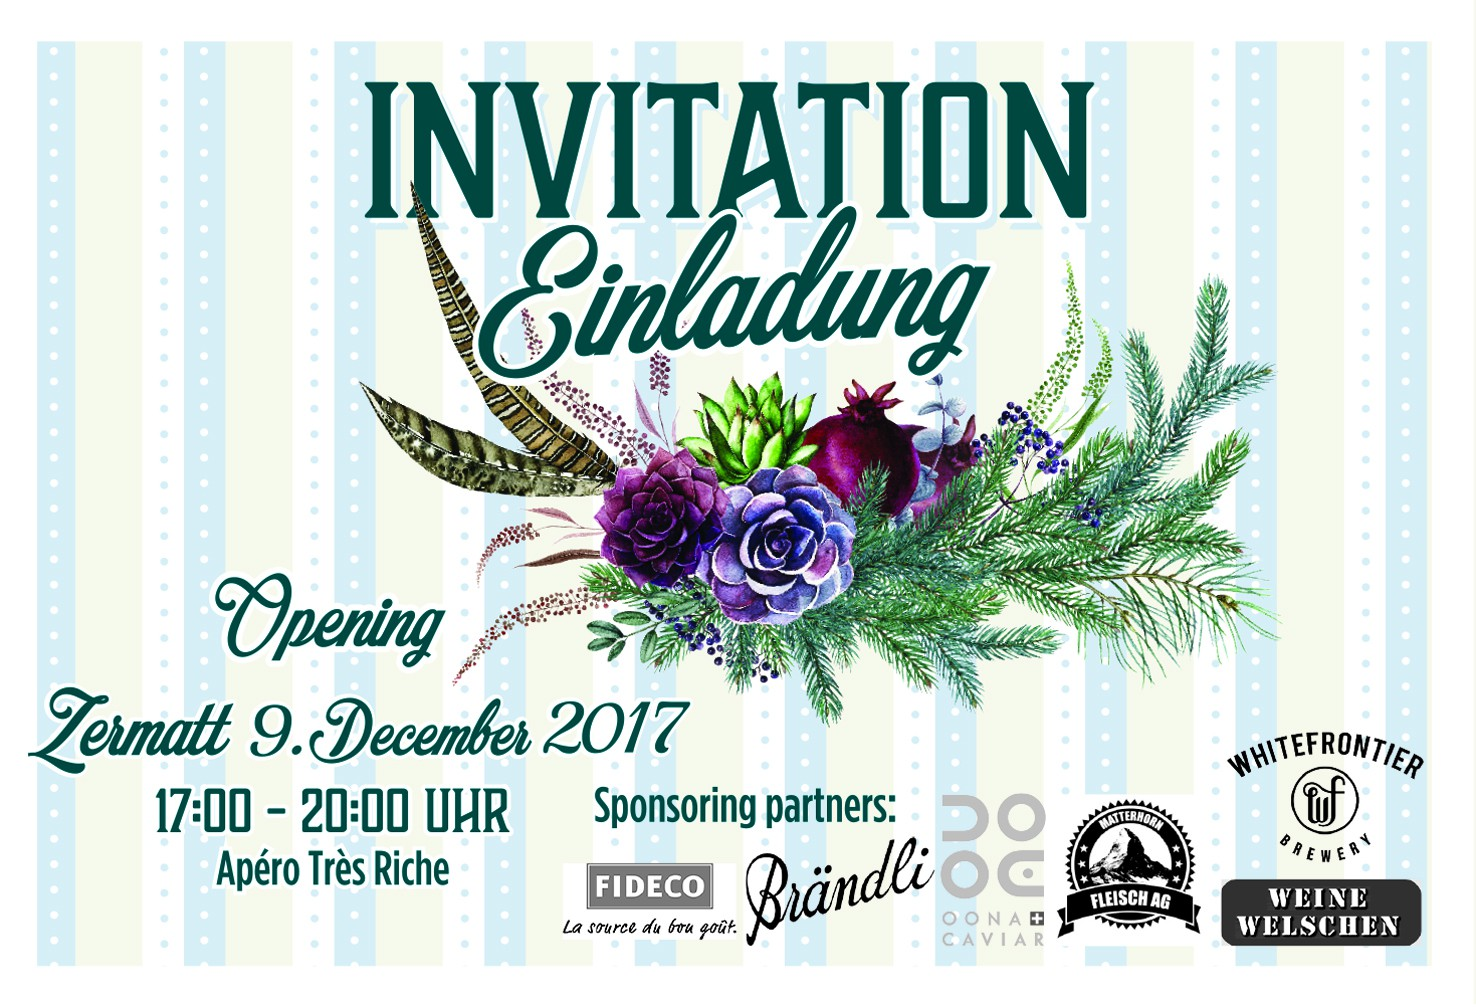 Invitation for Opening